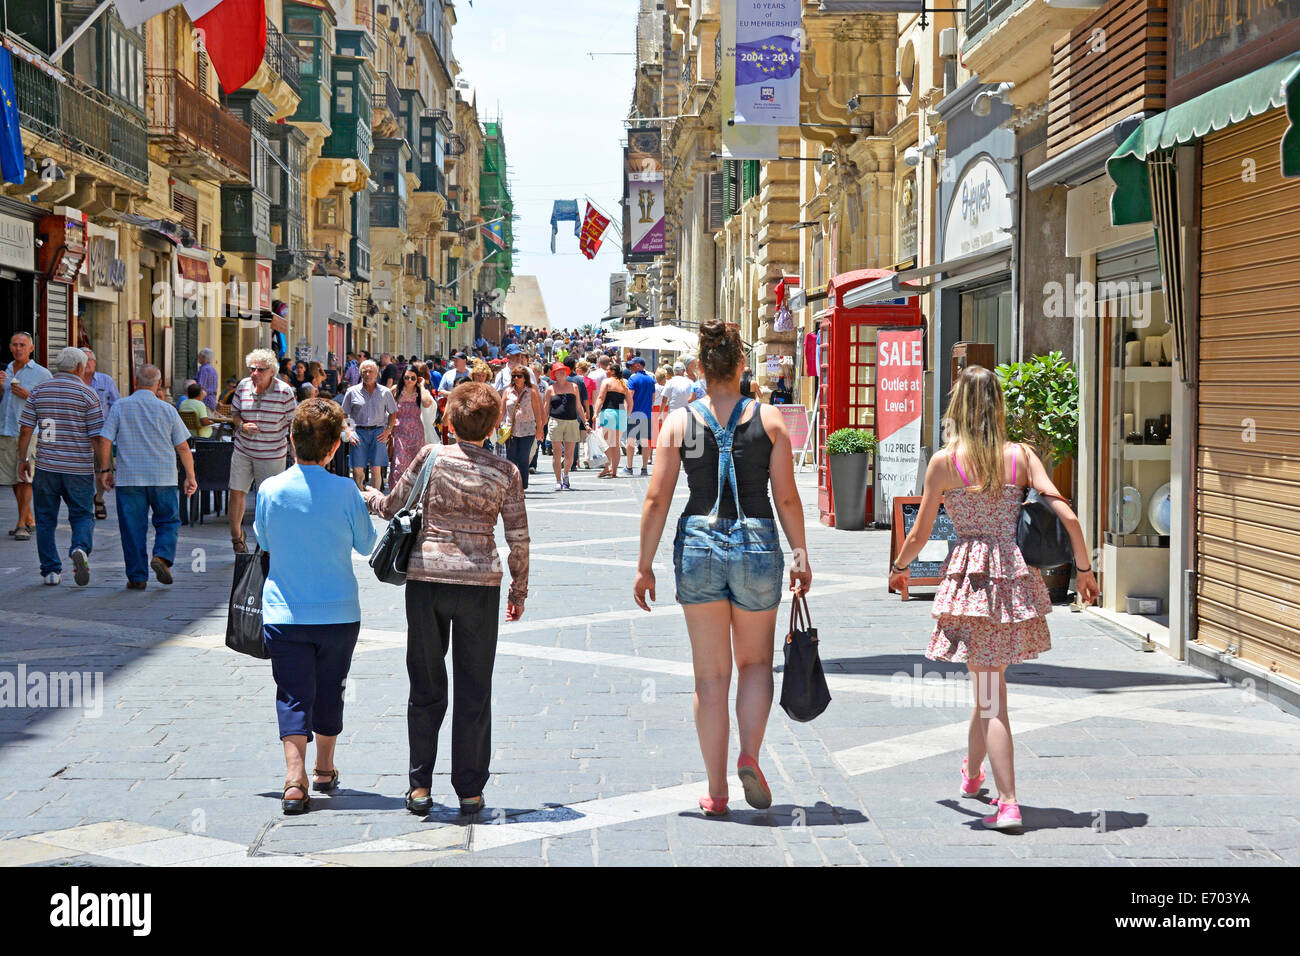 Shoppers and tourists in pedestrianised Republic Street Valletta - Stock Image